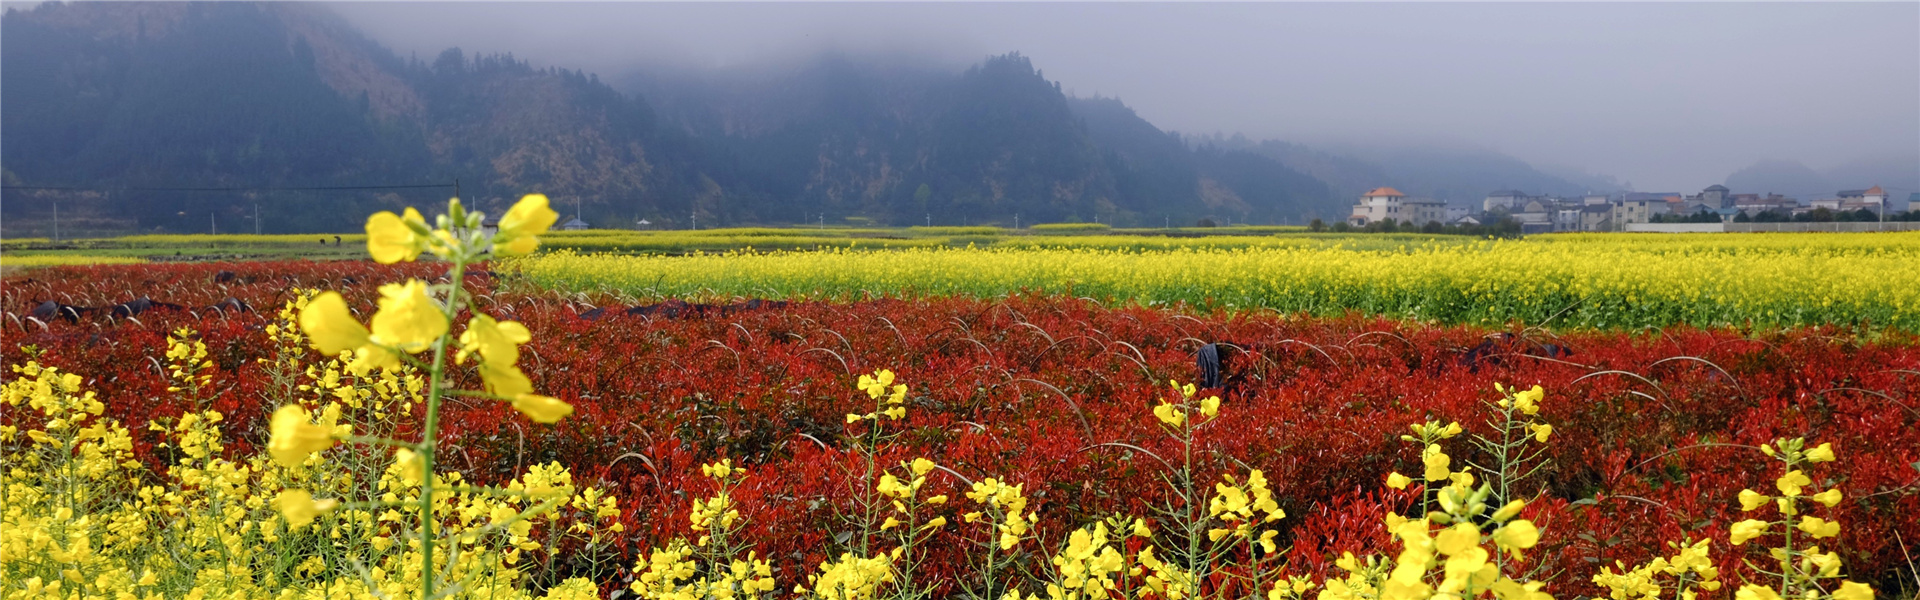 Quzhou rape fields bloom in springtime